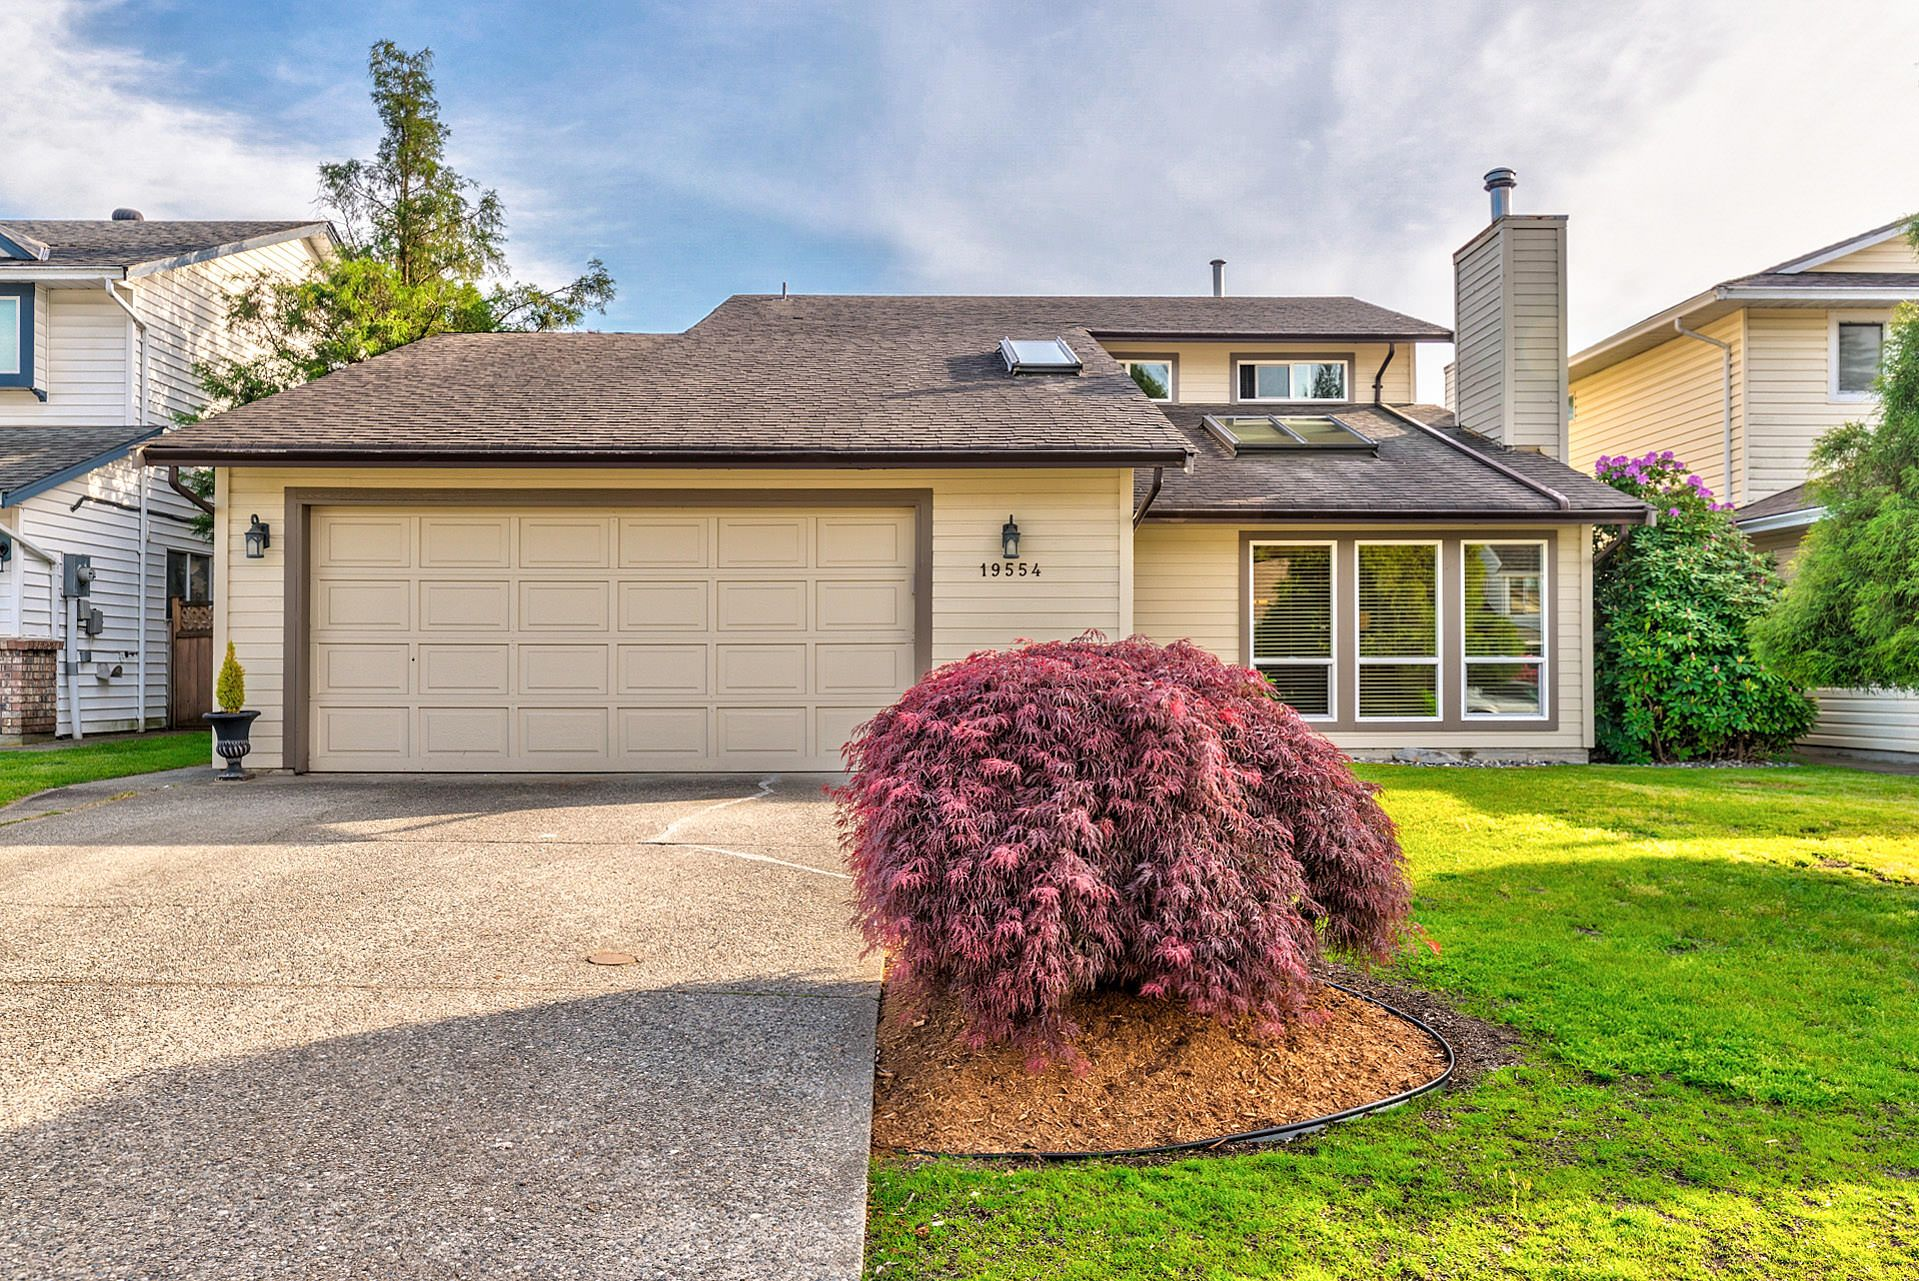 Main Photo: 19554 Oak Terrace in Pitt Meadows: Mid Meadows House for sale : MLS®# R2369640